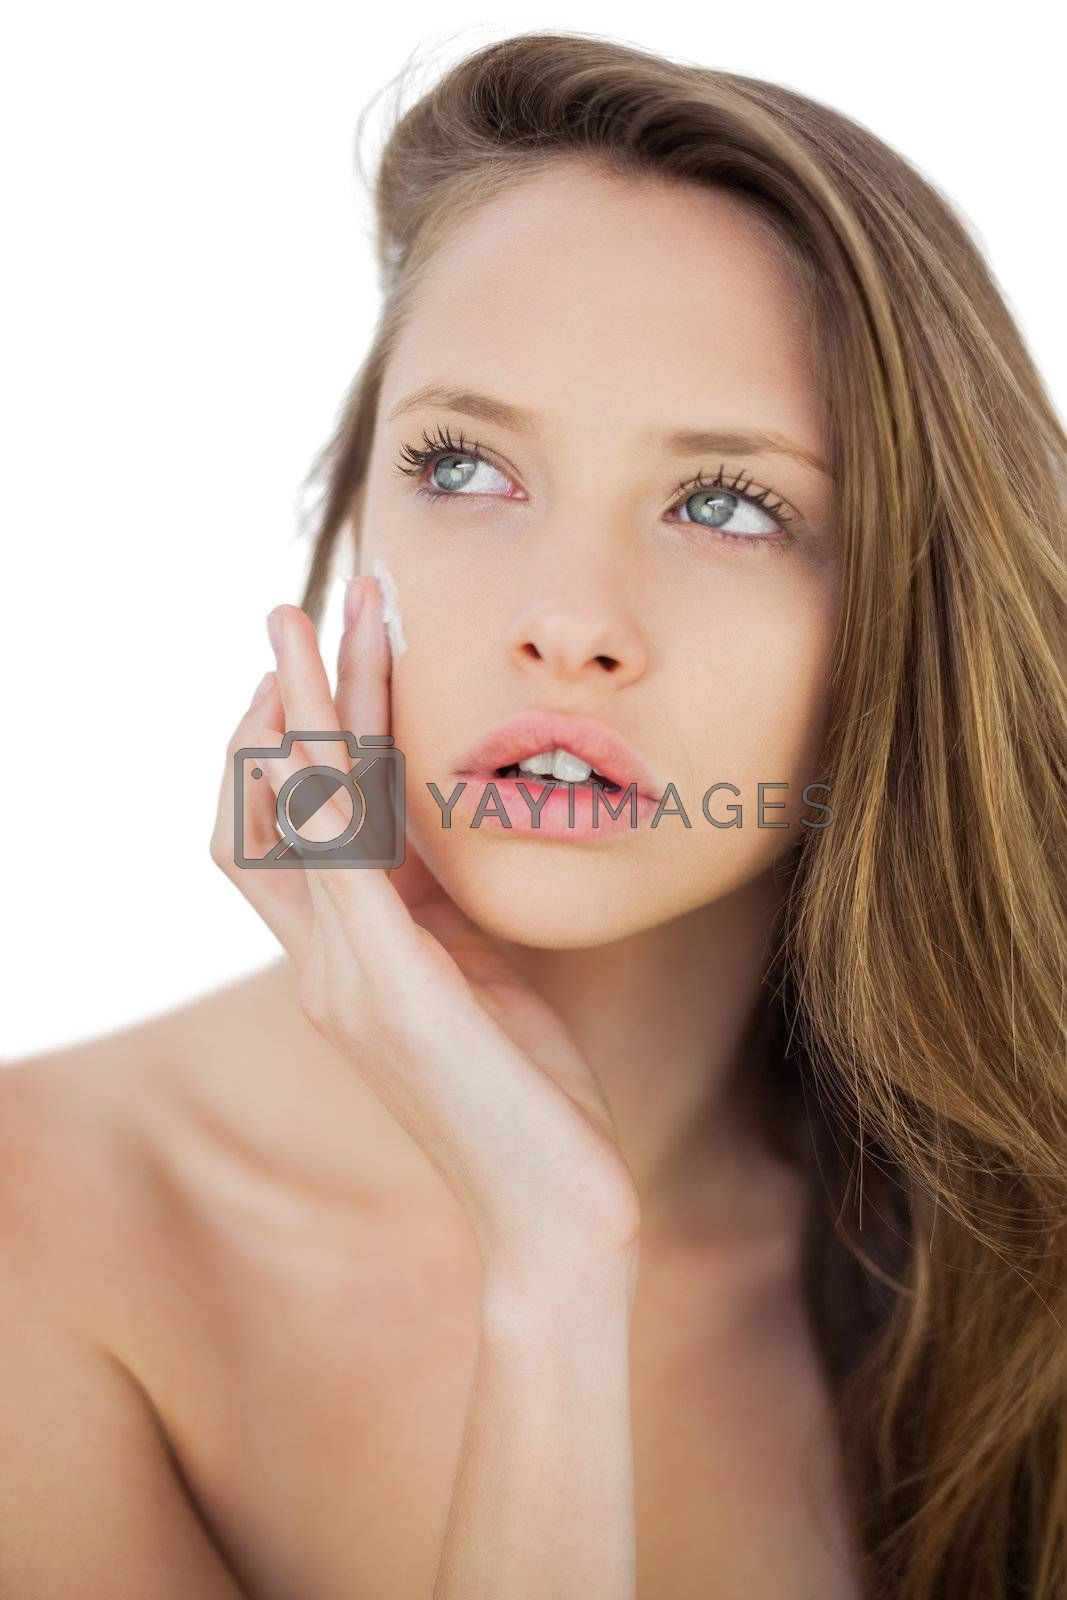 Concentrated brunette model rubbing her cheek with cream by Wavebreakmedia